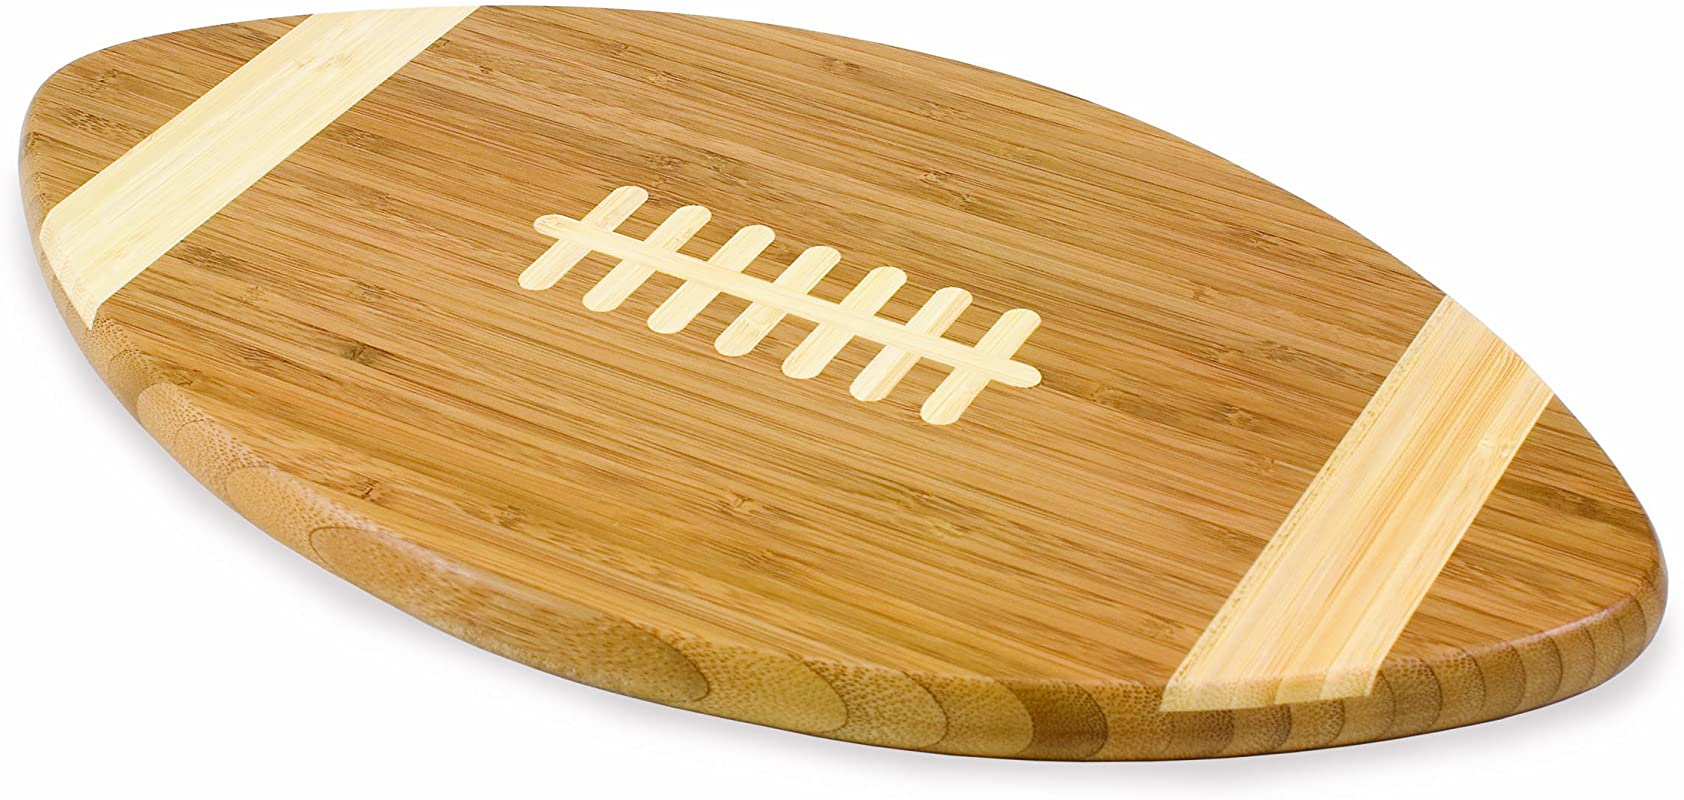 TOSCANA A Picnic Time Brand Touchdown Bamboo 16 Inch Cutting Board